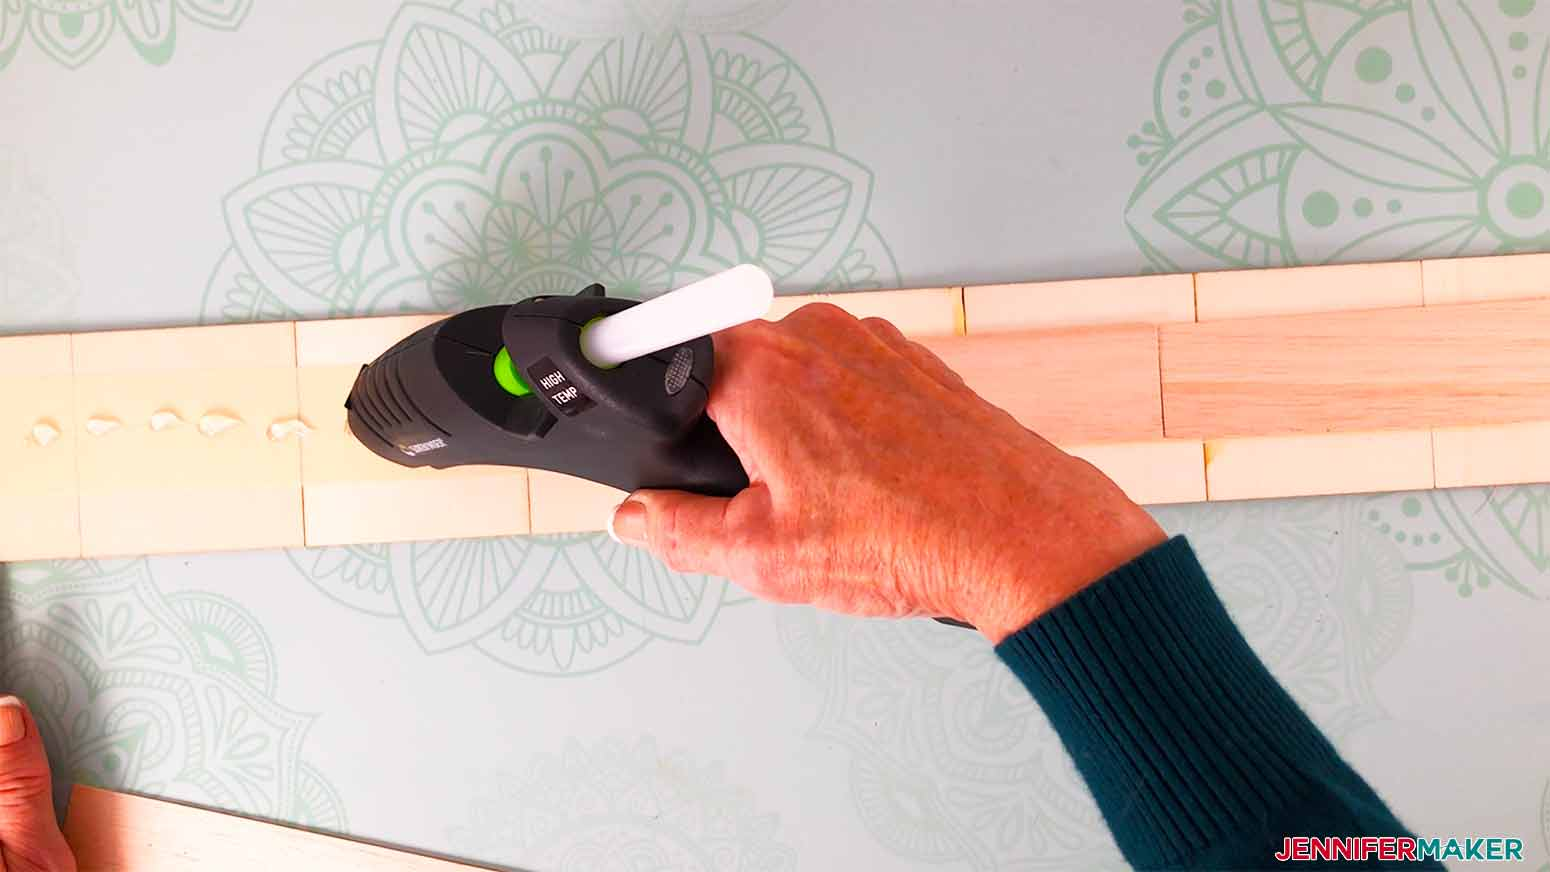 glue along the masking tape to place wood pieces assuring you straddle the tiles for my scrabble wall art